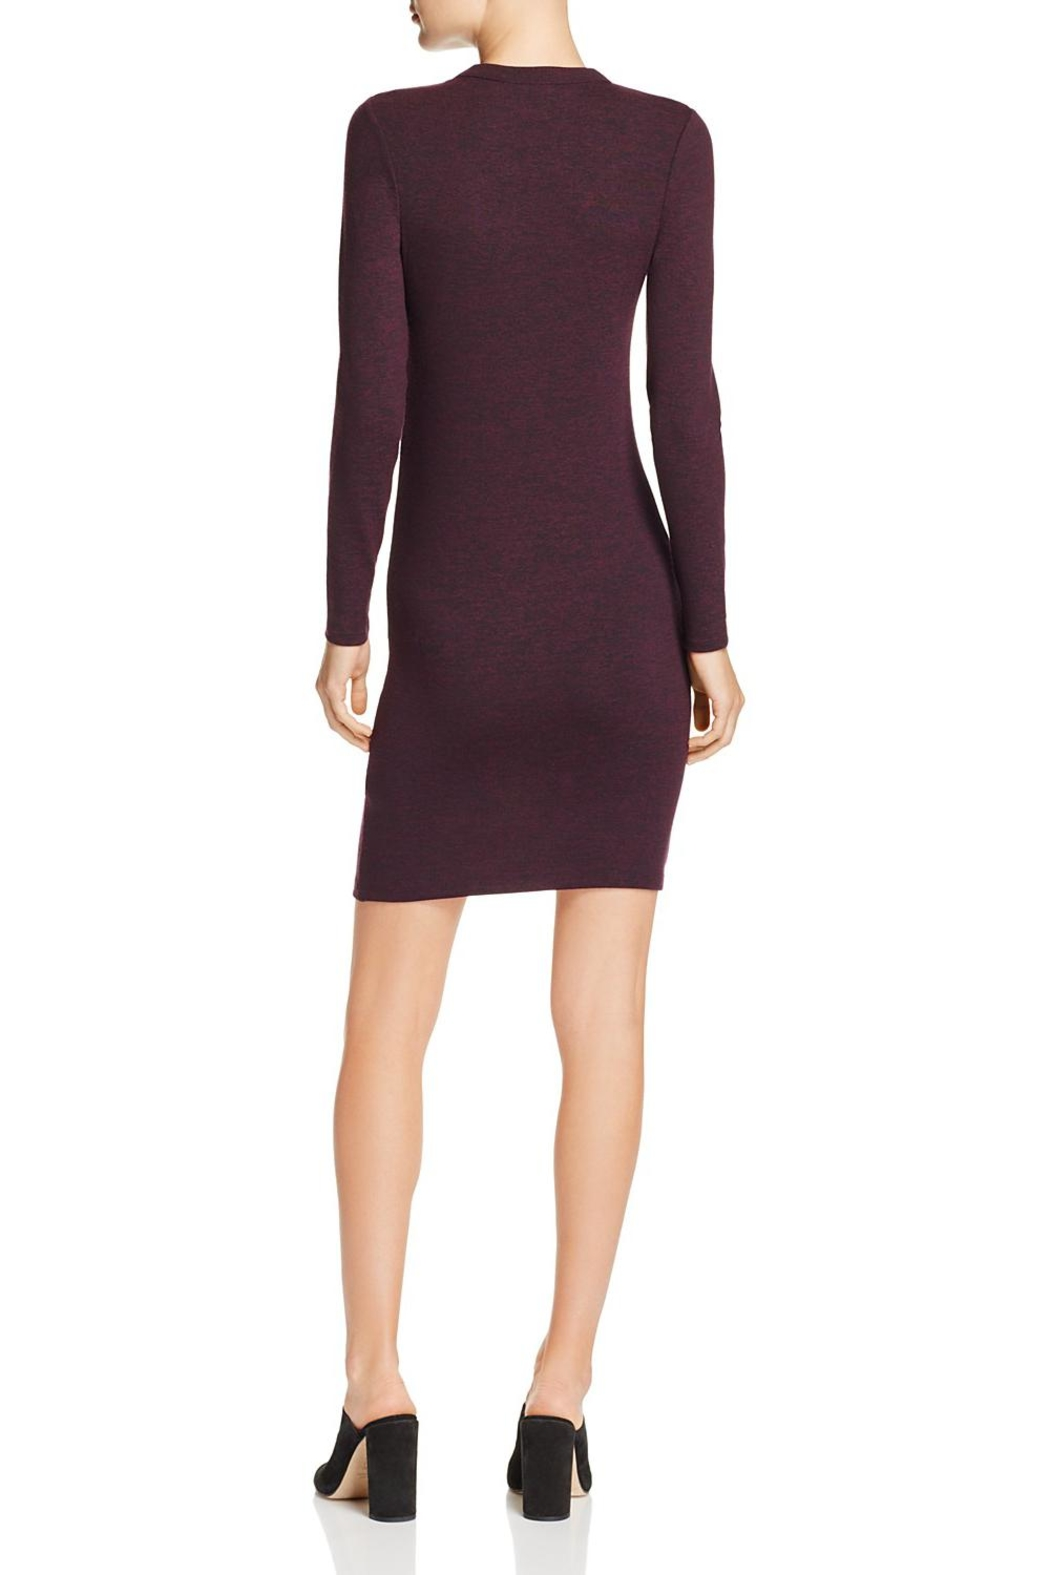 French Connection Sweeter Sweater Mini-Dress - Front Full Image